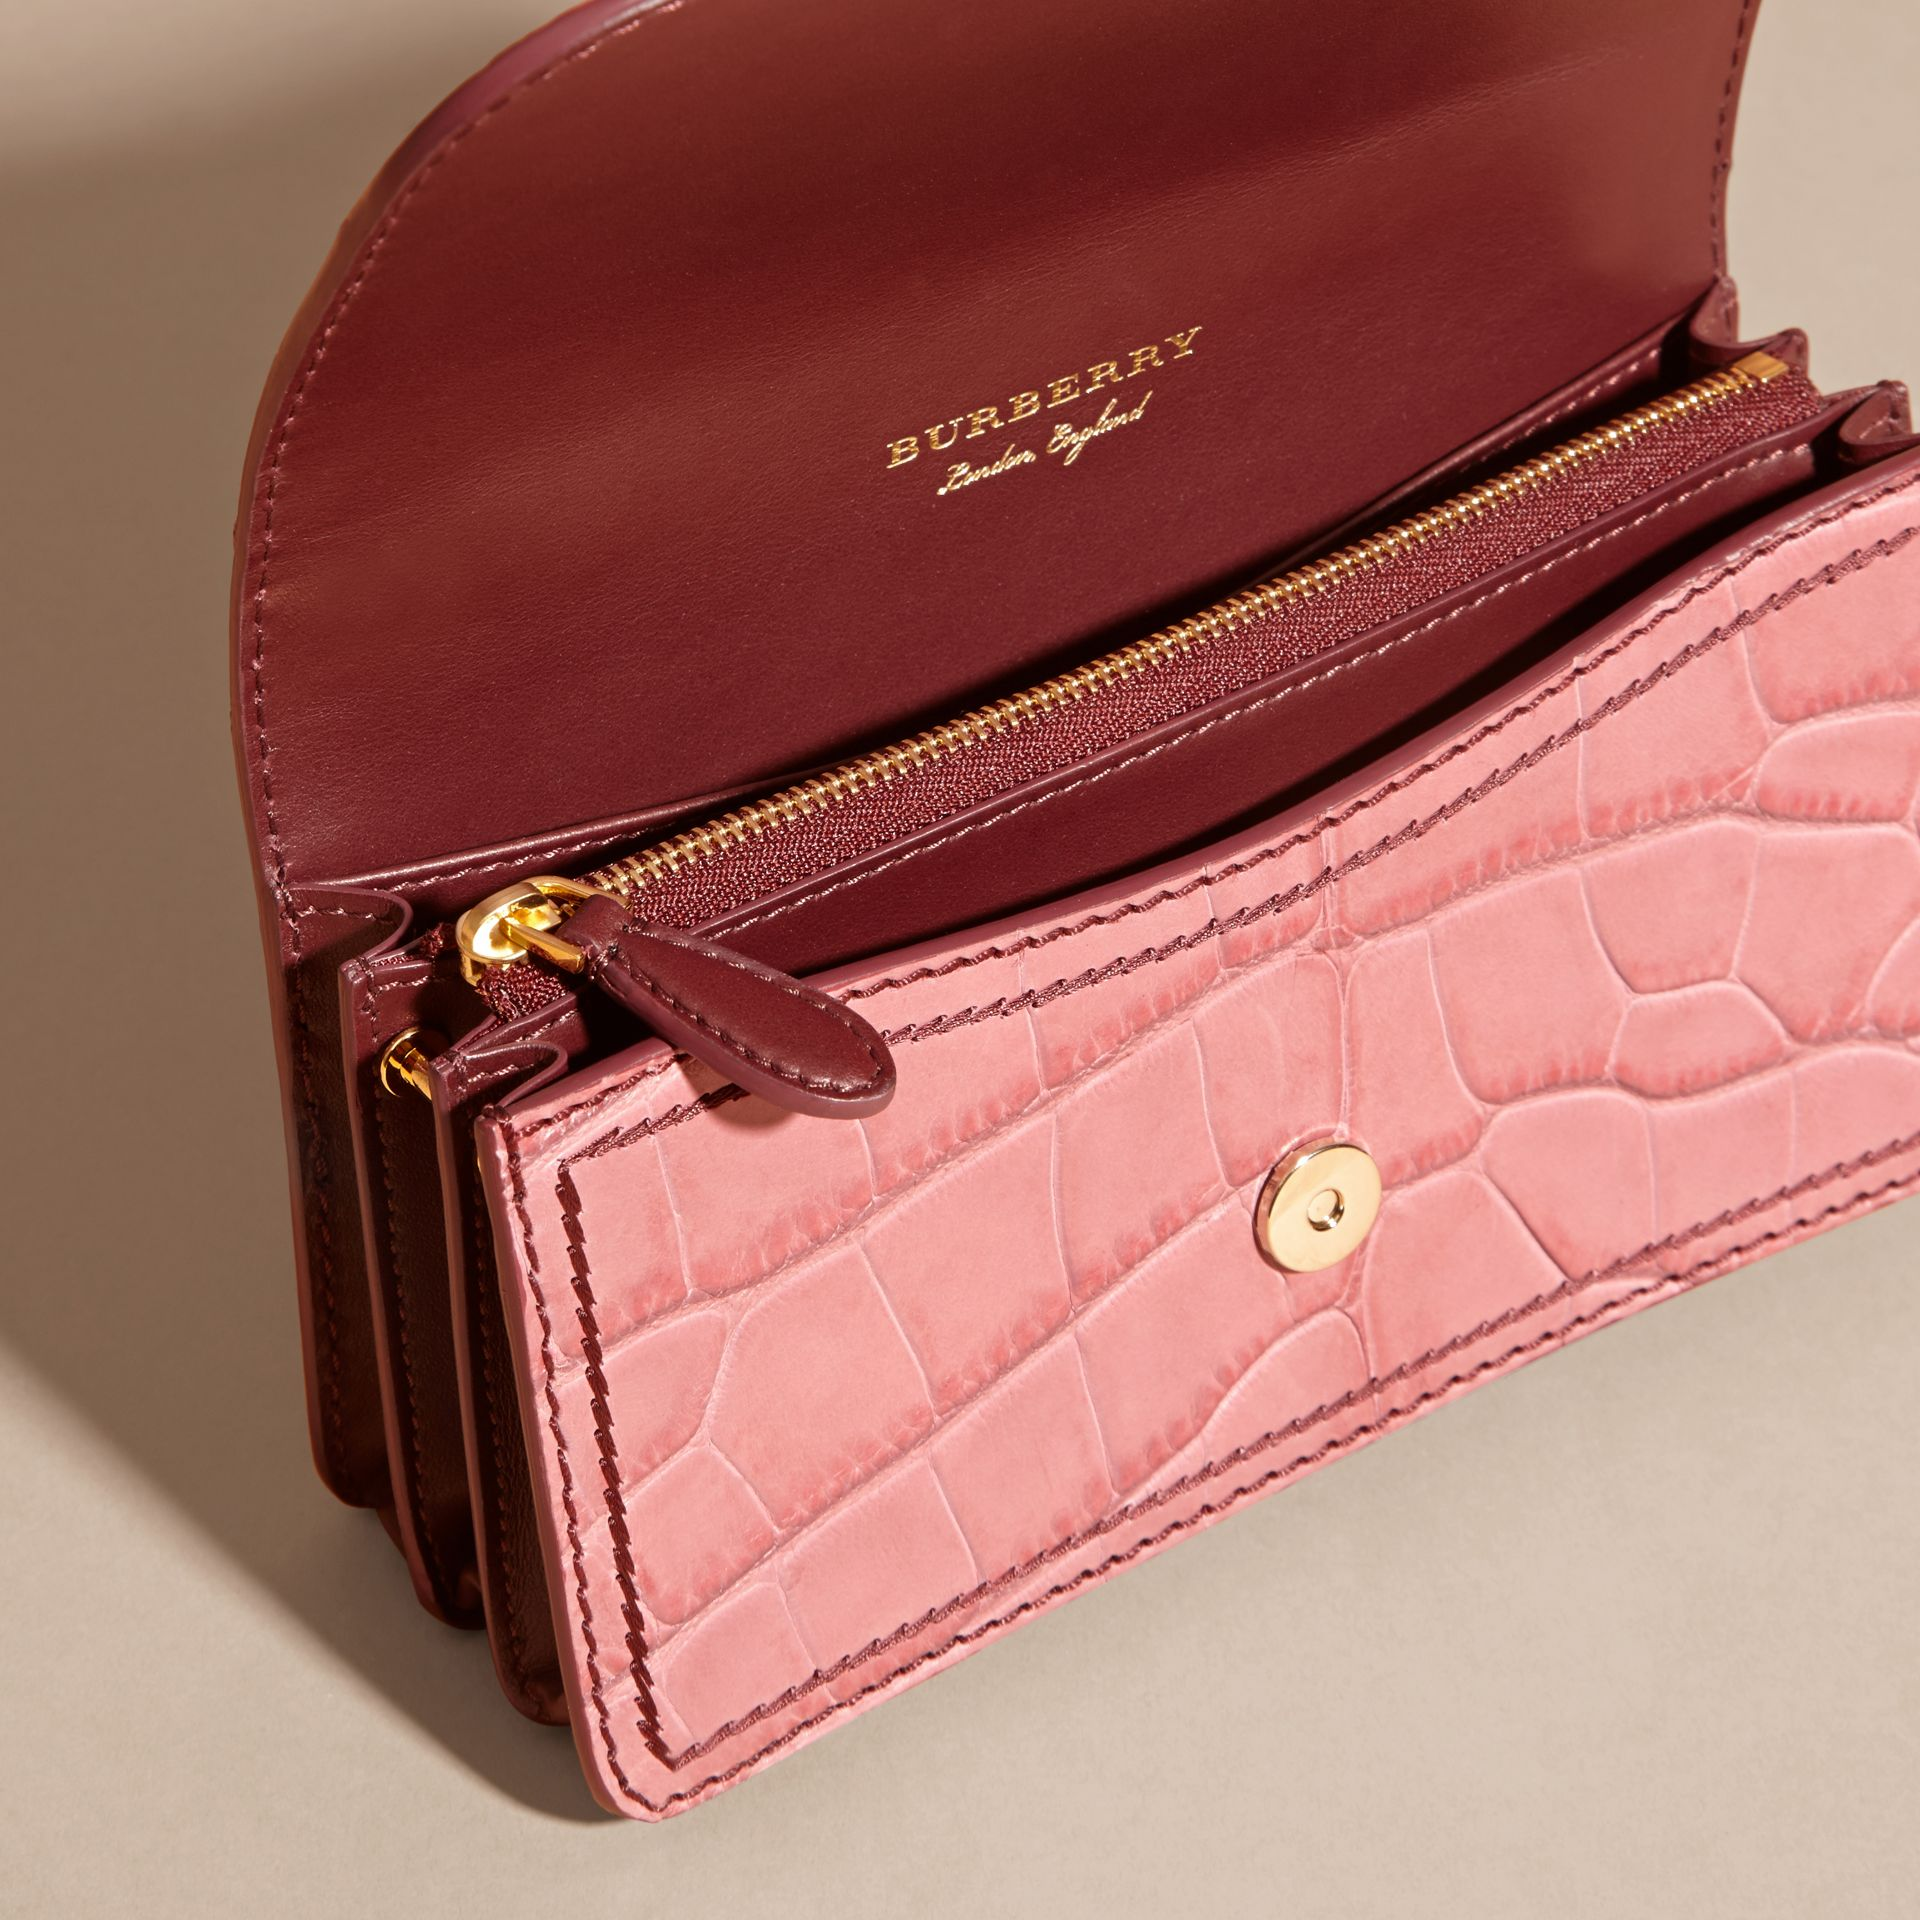 The Small Buckle Bag in Alligator and Leather in Dusky Pink/ Burgundy - Women | Burberry - gallery image 6